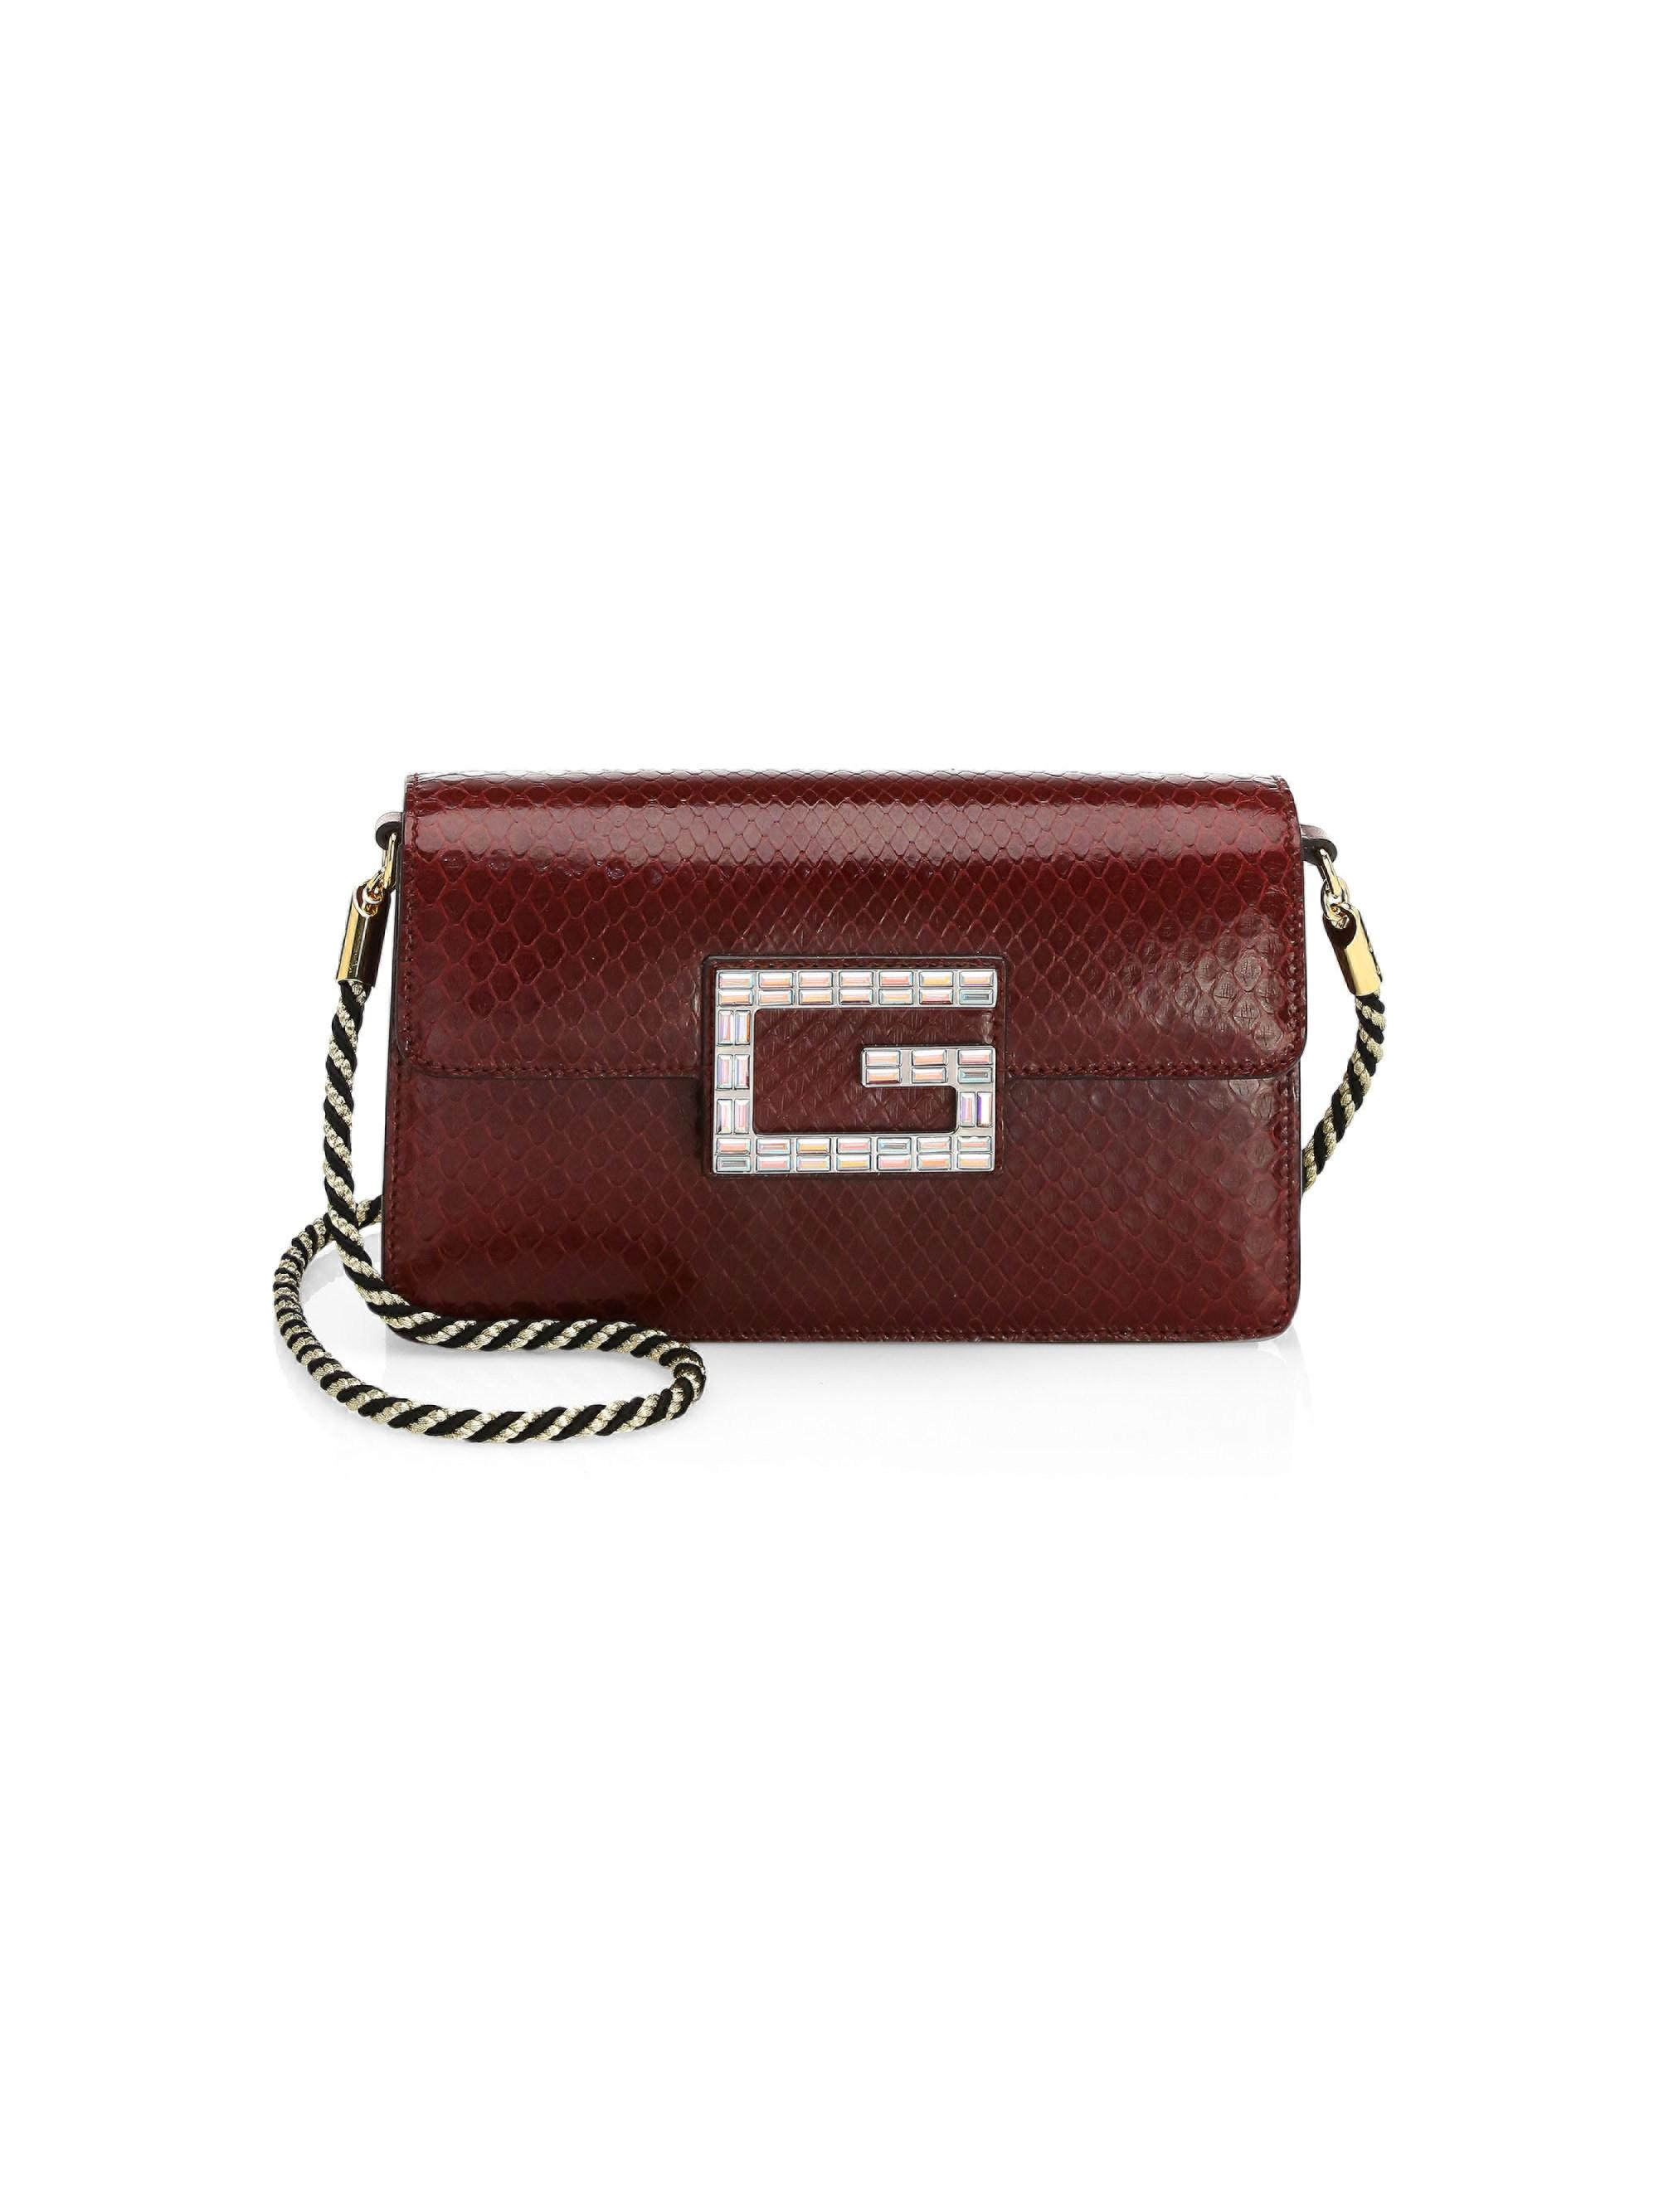 5bfc935b5561 Gucci. Red Women's Small Broadway Python Shoulder Bag - Black. $1,980 From Saks  Fifth Avenue